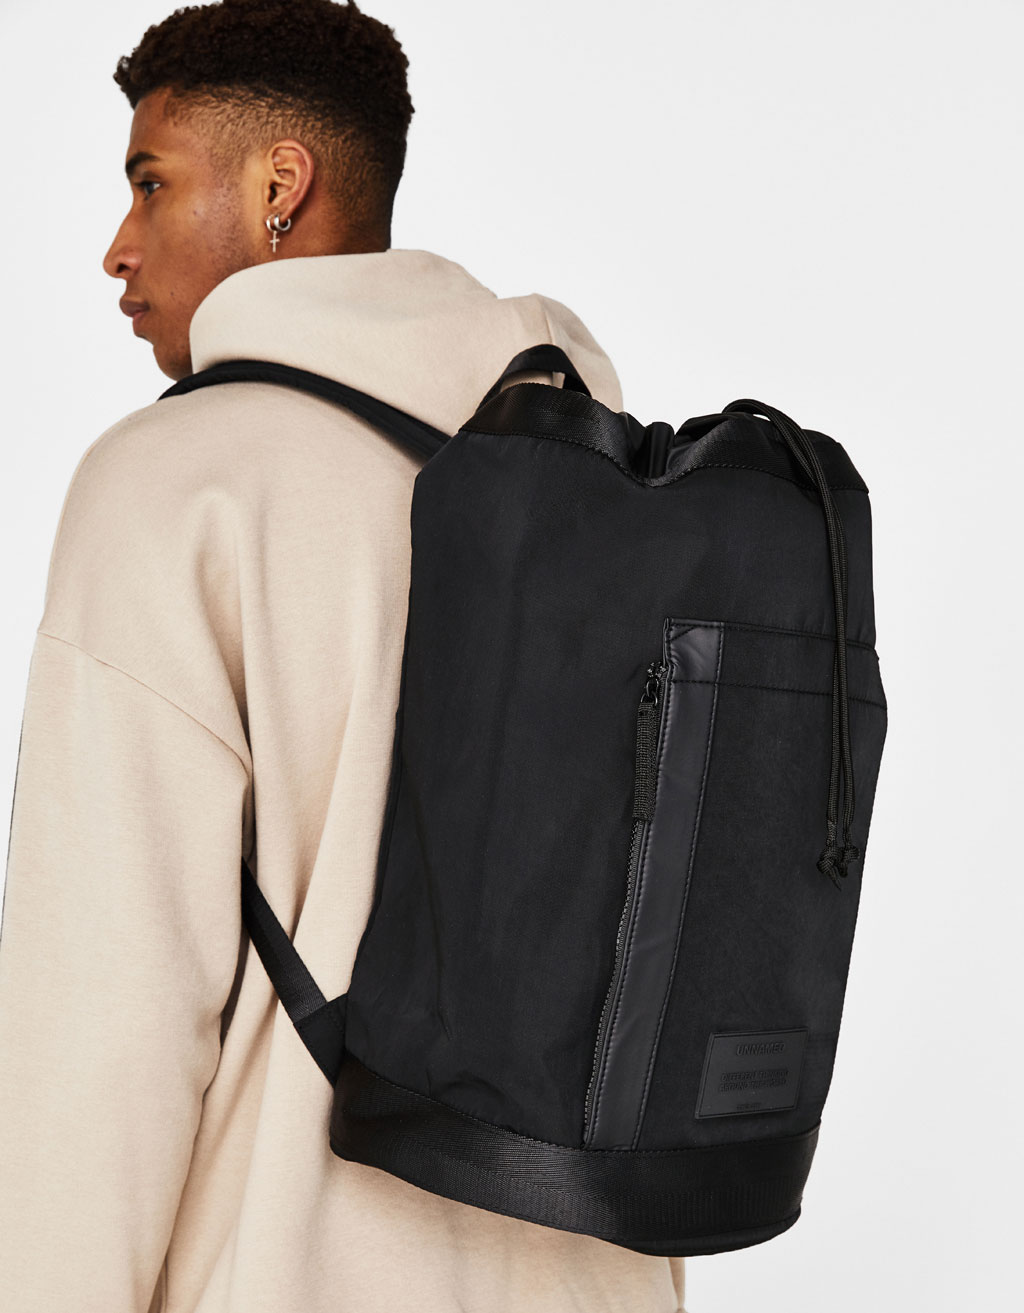 Sack-style backpack